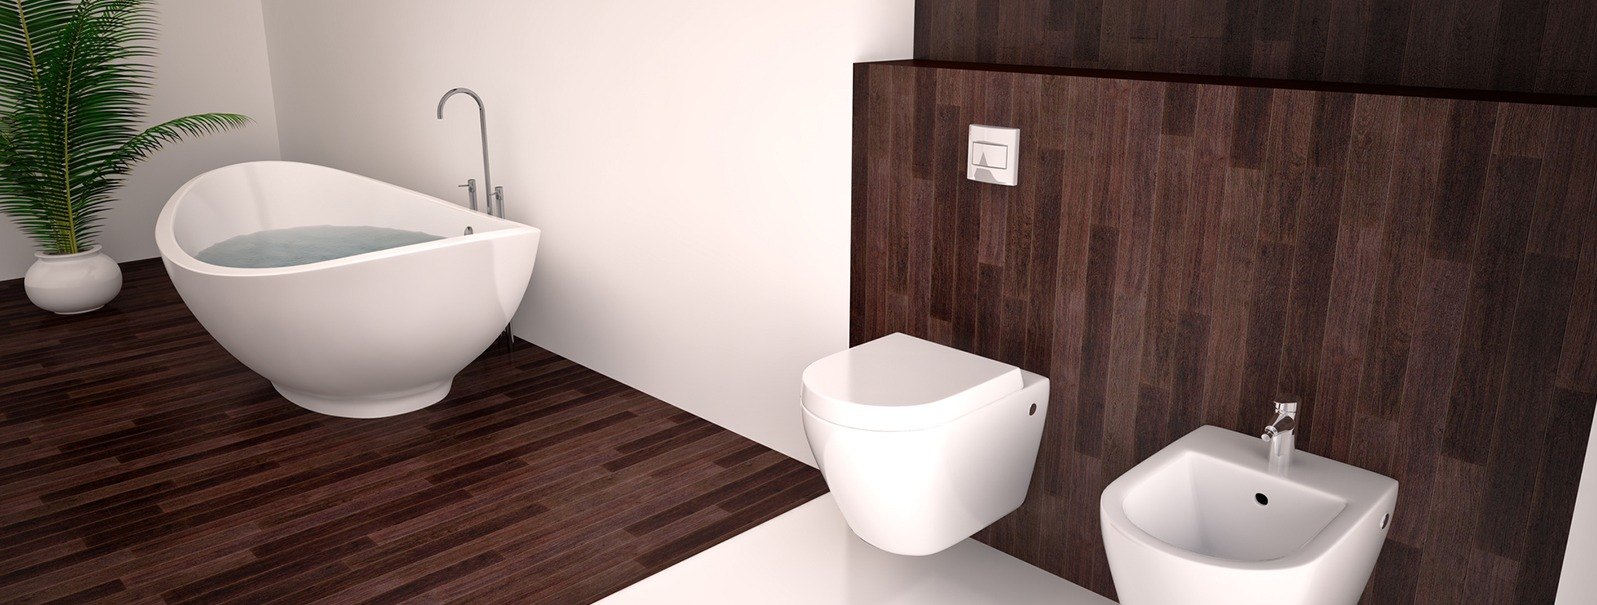 Parquet Flottant Salle De Bain Leroy Merlin Qualit Photo - The ...